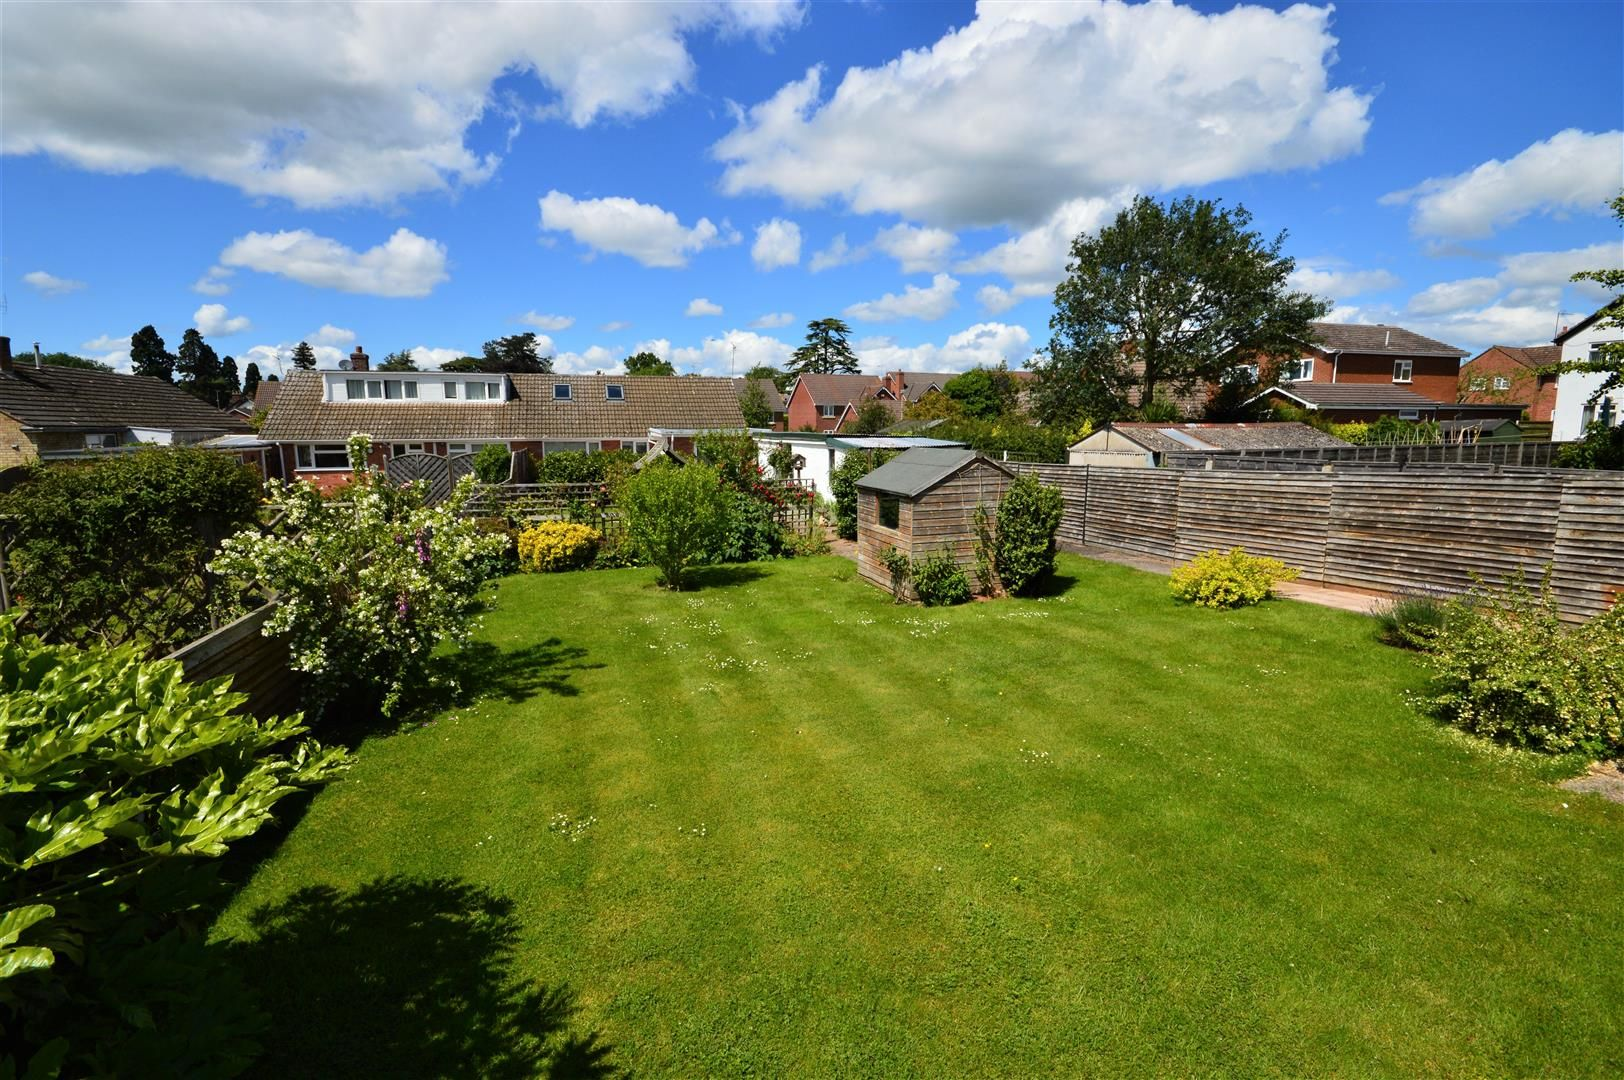 2 bed semi-detached-bungalow for sale in Leominster  - Property Image 11